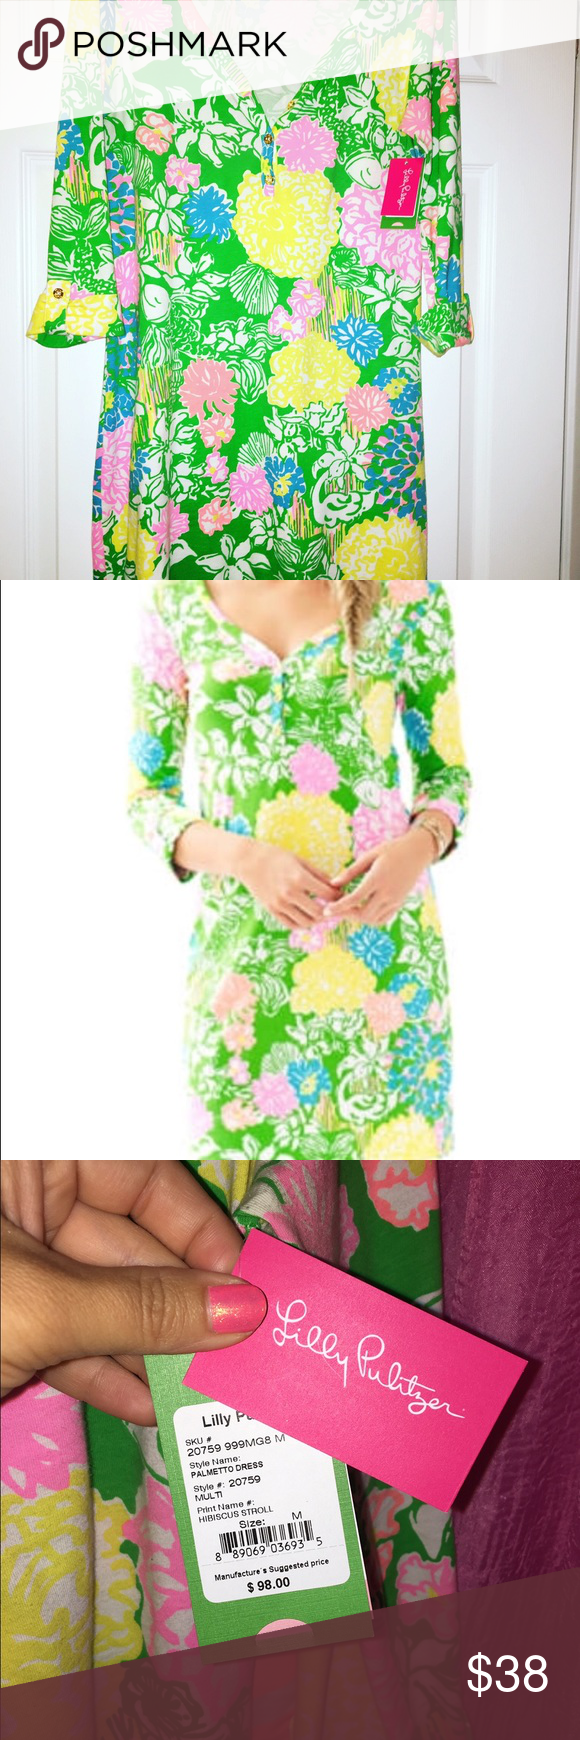 Lilly Pulitzer palmetto dress New with tags does show small signs pilling in the armpit area for some reason only noticeable upon close inspection. Lilly Pulitzer Dresses Mini